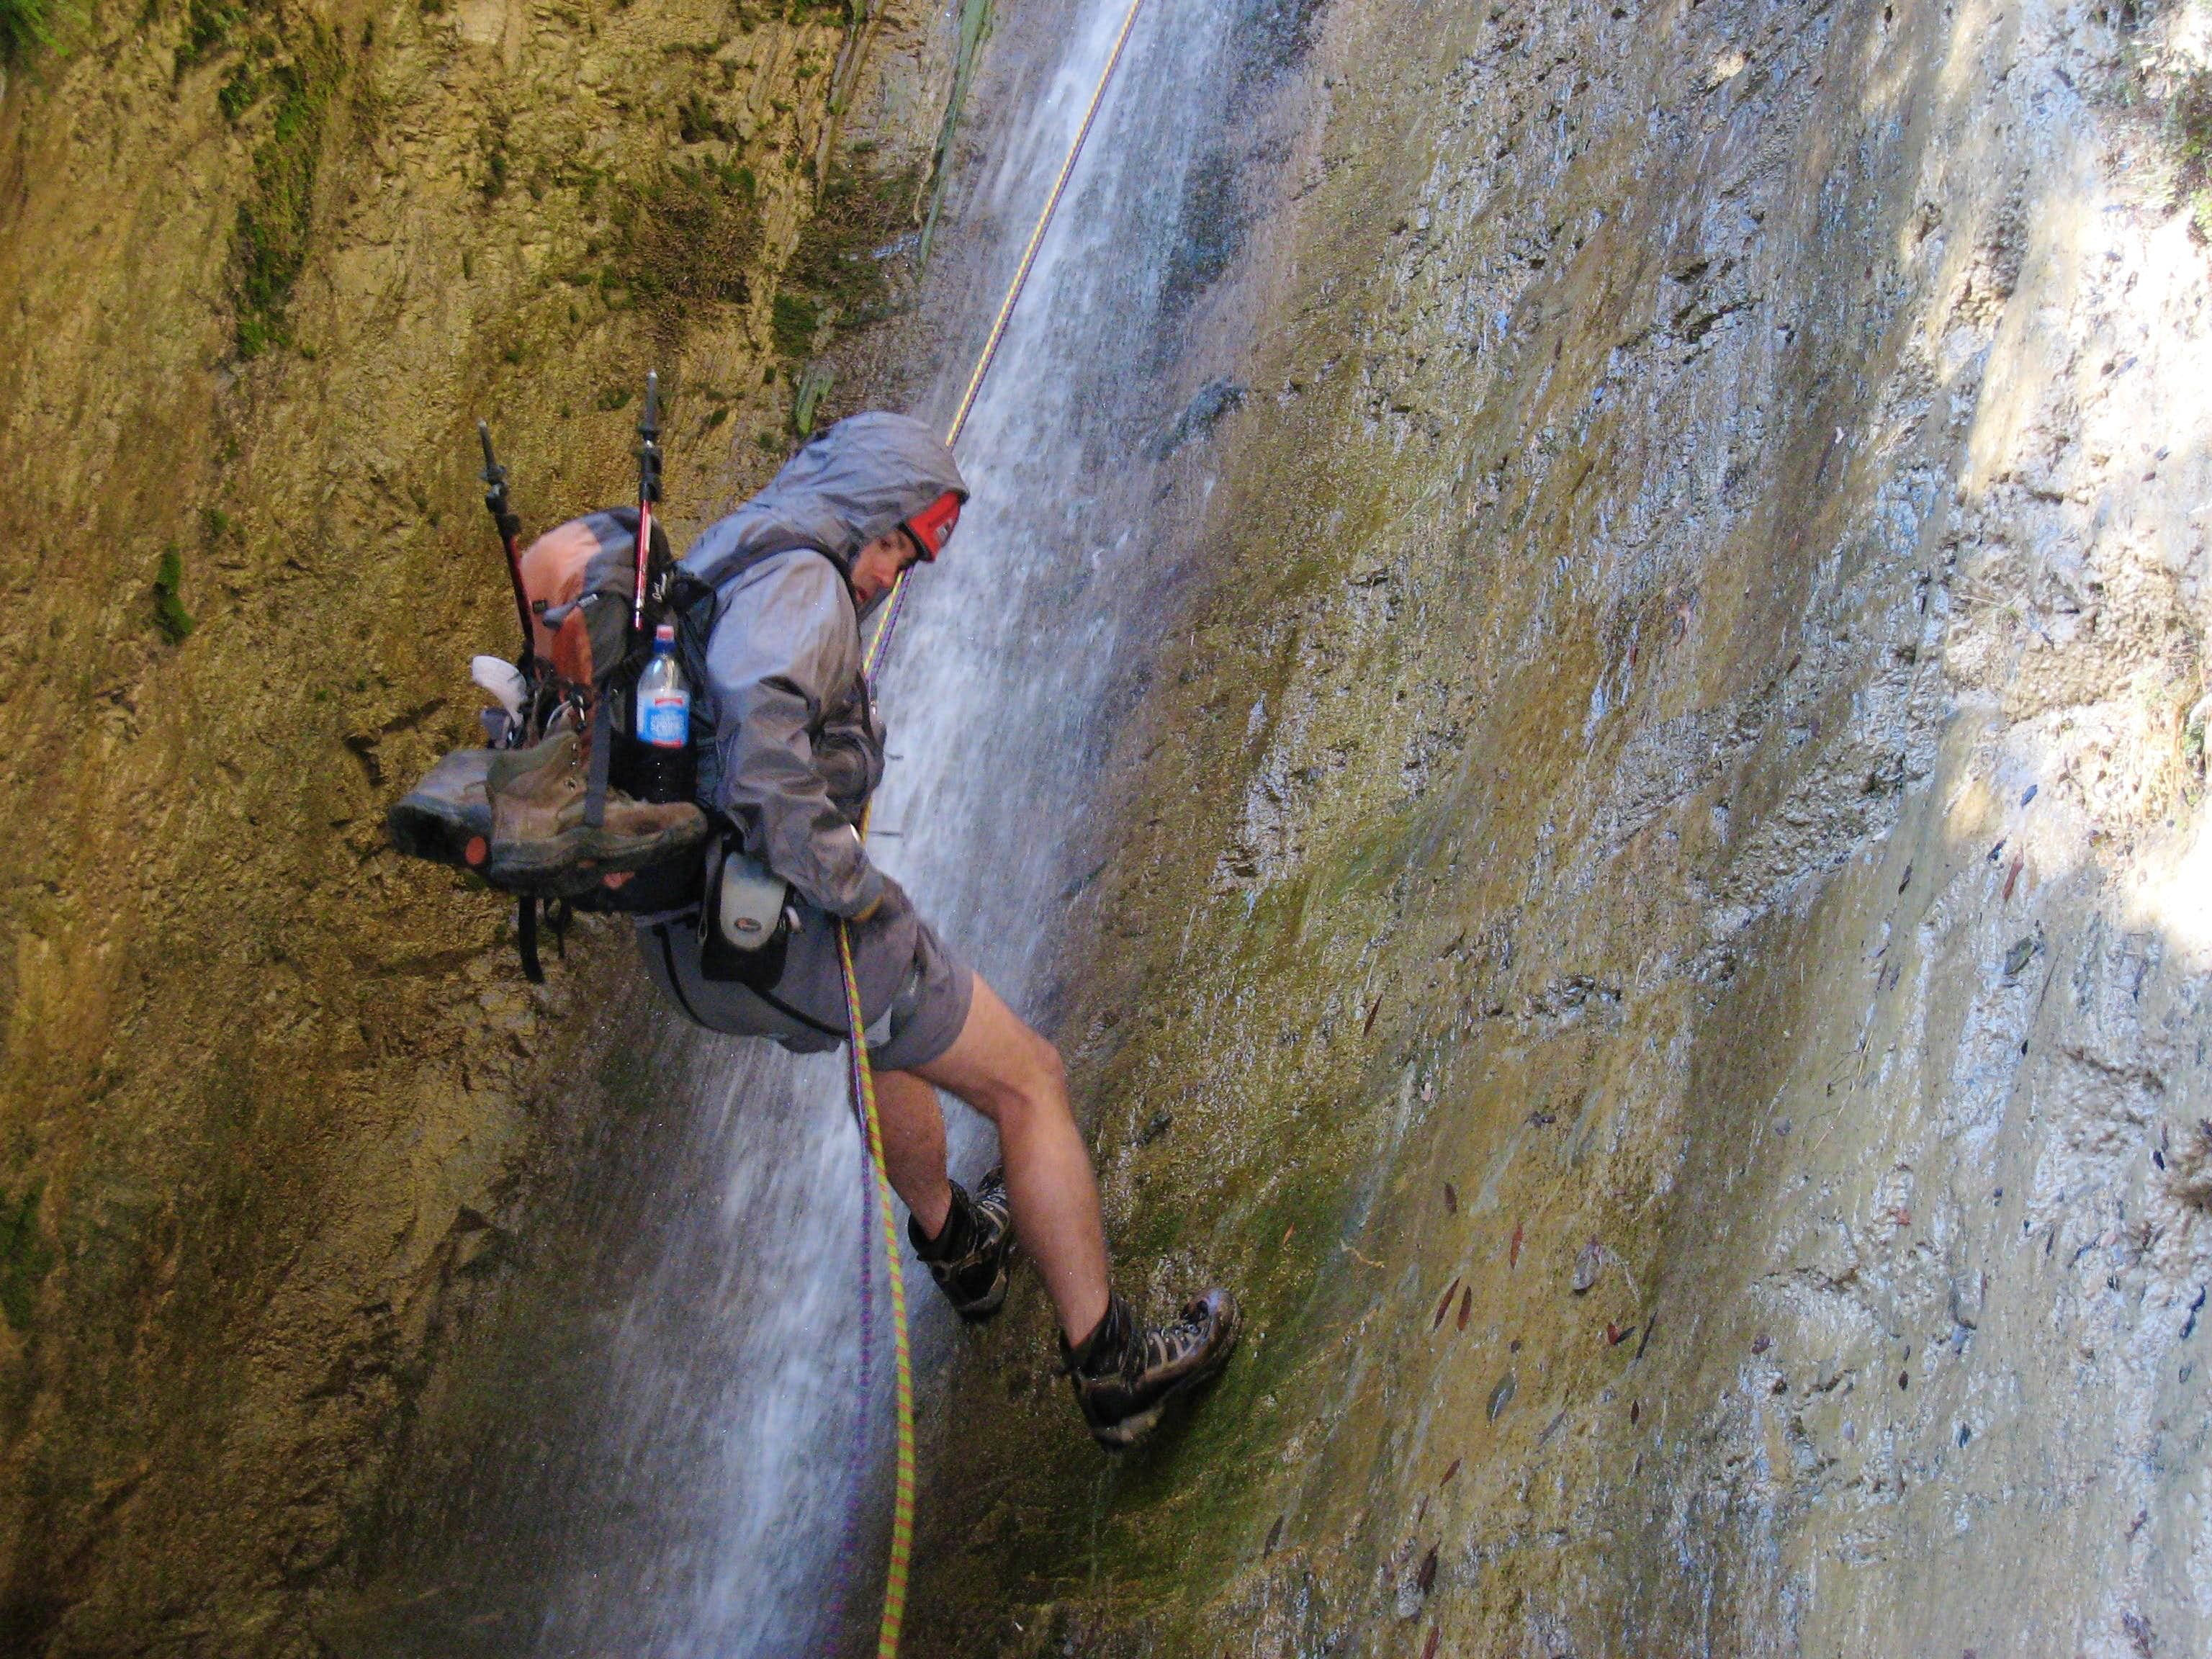 Canyoneering in the San Gabriels